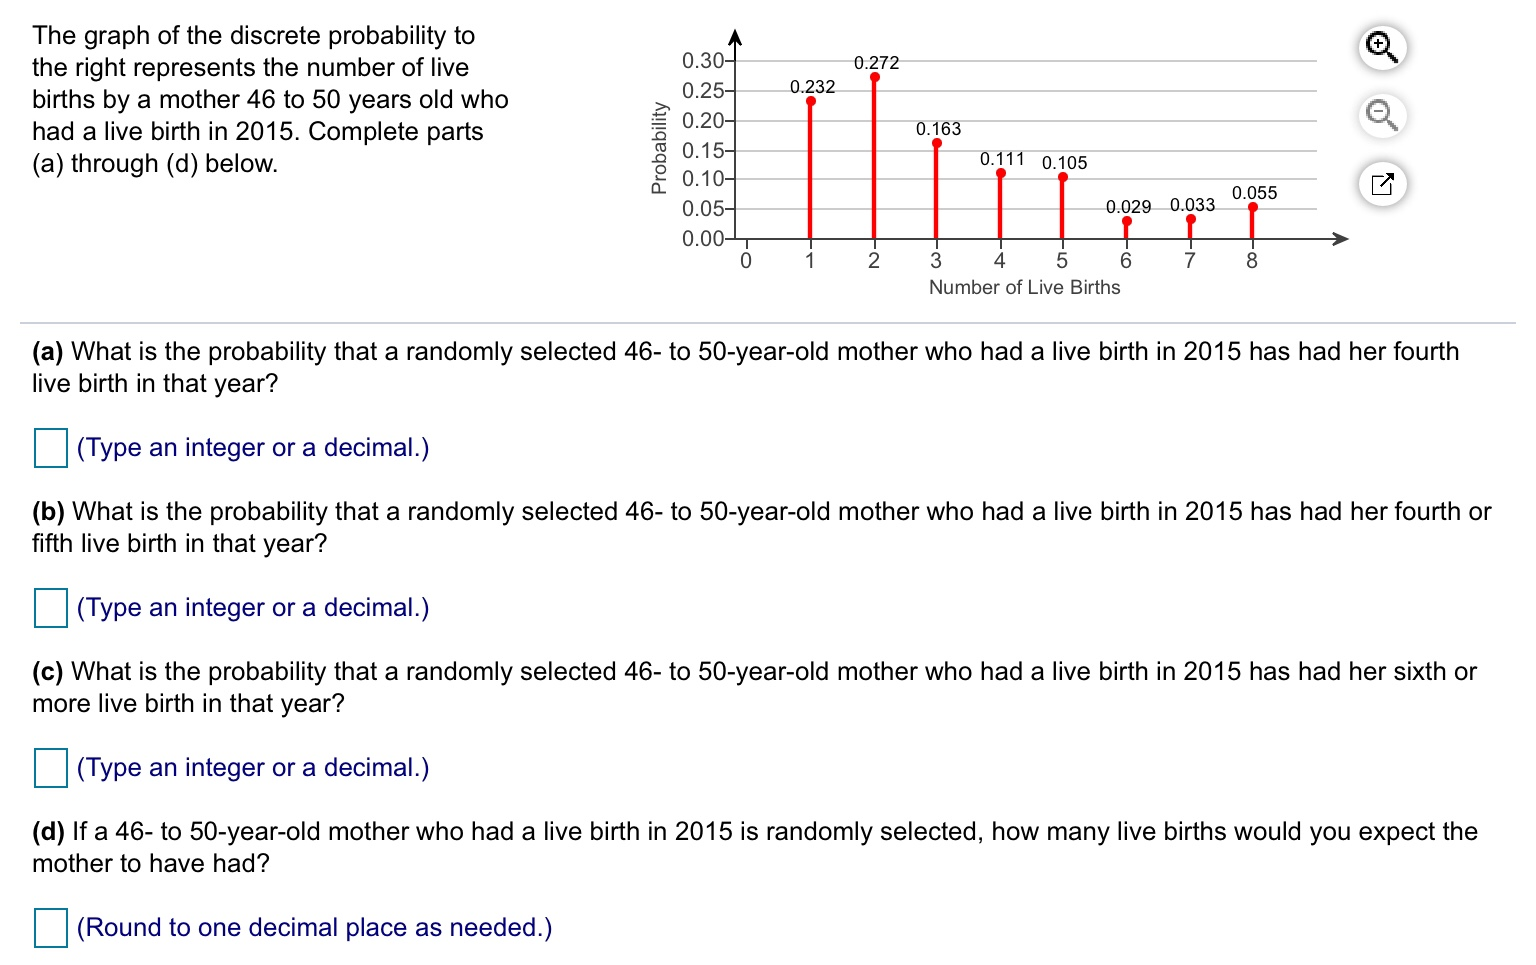 The graph of the discrete probability to the right represents the number of live births by a mother 46 to 50 years old who had a live birth in 2015. Complete parts (a) through (d) below. 0.30- 0.25- 0.20- 0.15- 0.10- 0.05- 0.00- 0.272 0.232 0.163 0.111 0.105 0.055 0.033 0.029 1 3 4 8 Number of Live Births (a) What is the probability that a randomly selected 46- to 50-year-old mother who had a live birth in 2015 has had her fourth live birth in that year? (Type an integer or a decimal.) (b) What is the probability that a randomly selected 46- to 50-year-old mother who had a live birth in 2015 has had her fourth or fifth live birth in that year? (Type an integer or a decimal.) (c) What is the probability that a randomly selected 46- to 50-year-old mother who had a live birth in 2015 has had her sixth or more live birth in that year? (Type an integer or a decimal.) (d) If a 46- to 50-year-old mother who had a live birth in 2015 is randomly selected, how many live births would you expect the mother to have had? (Round to one decimal place as needed.)